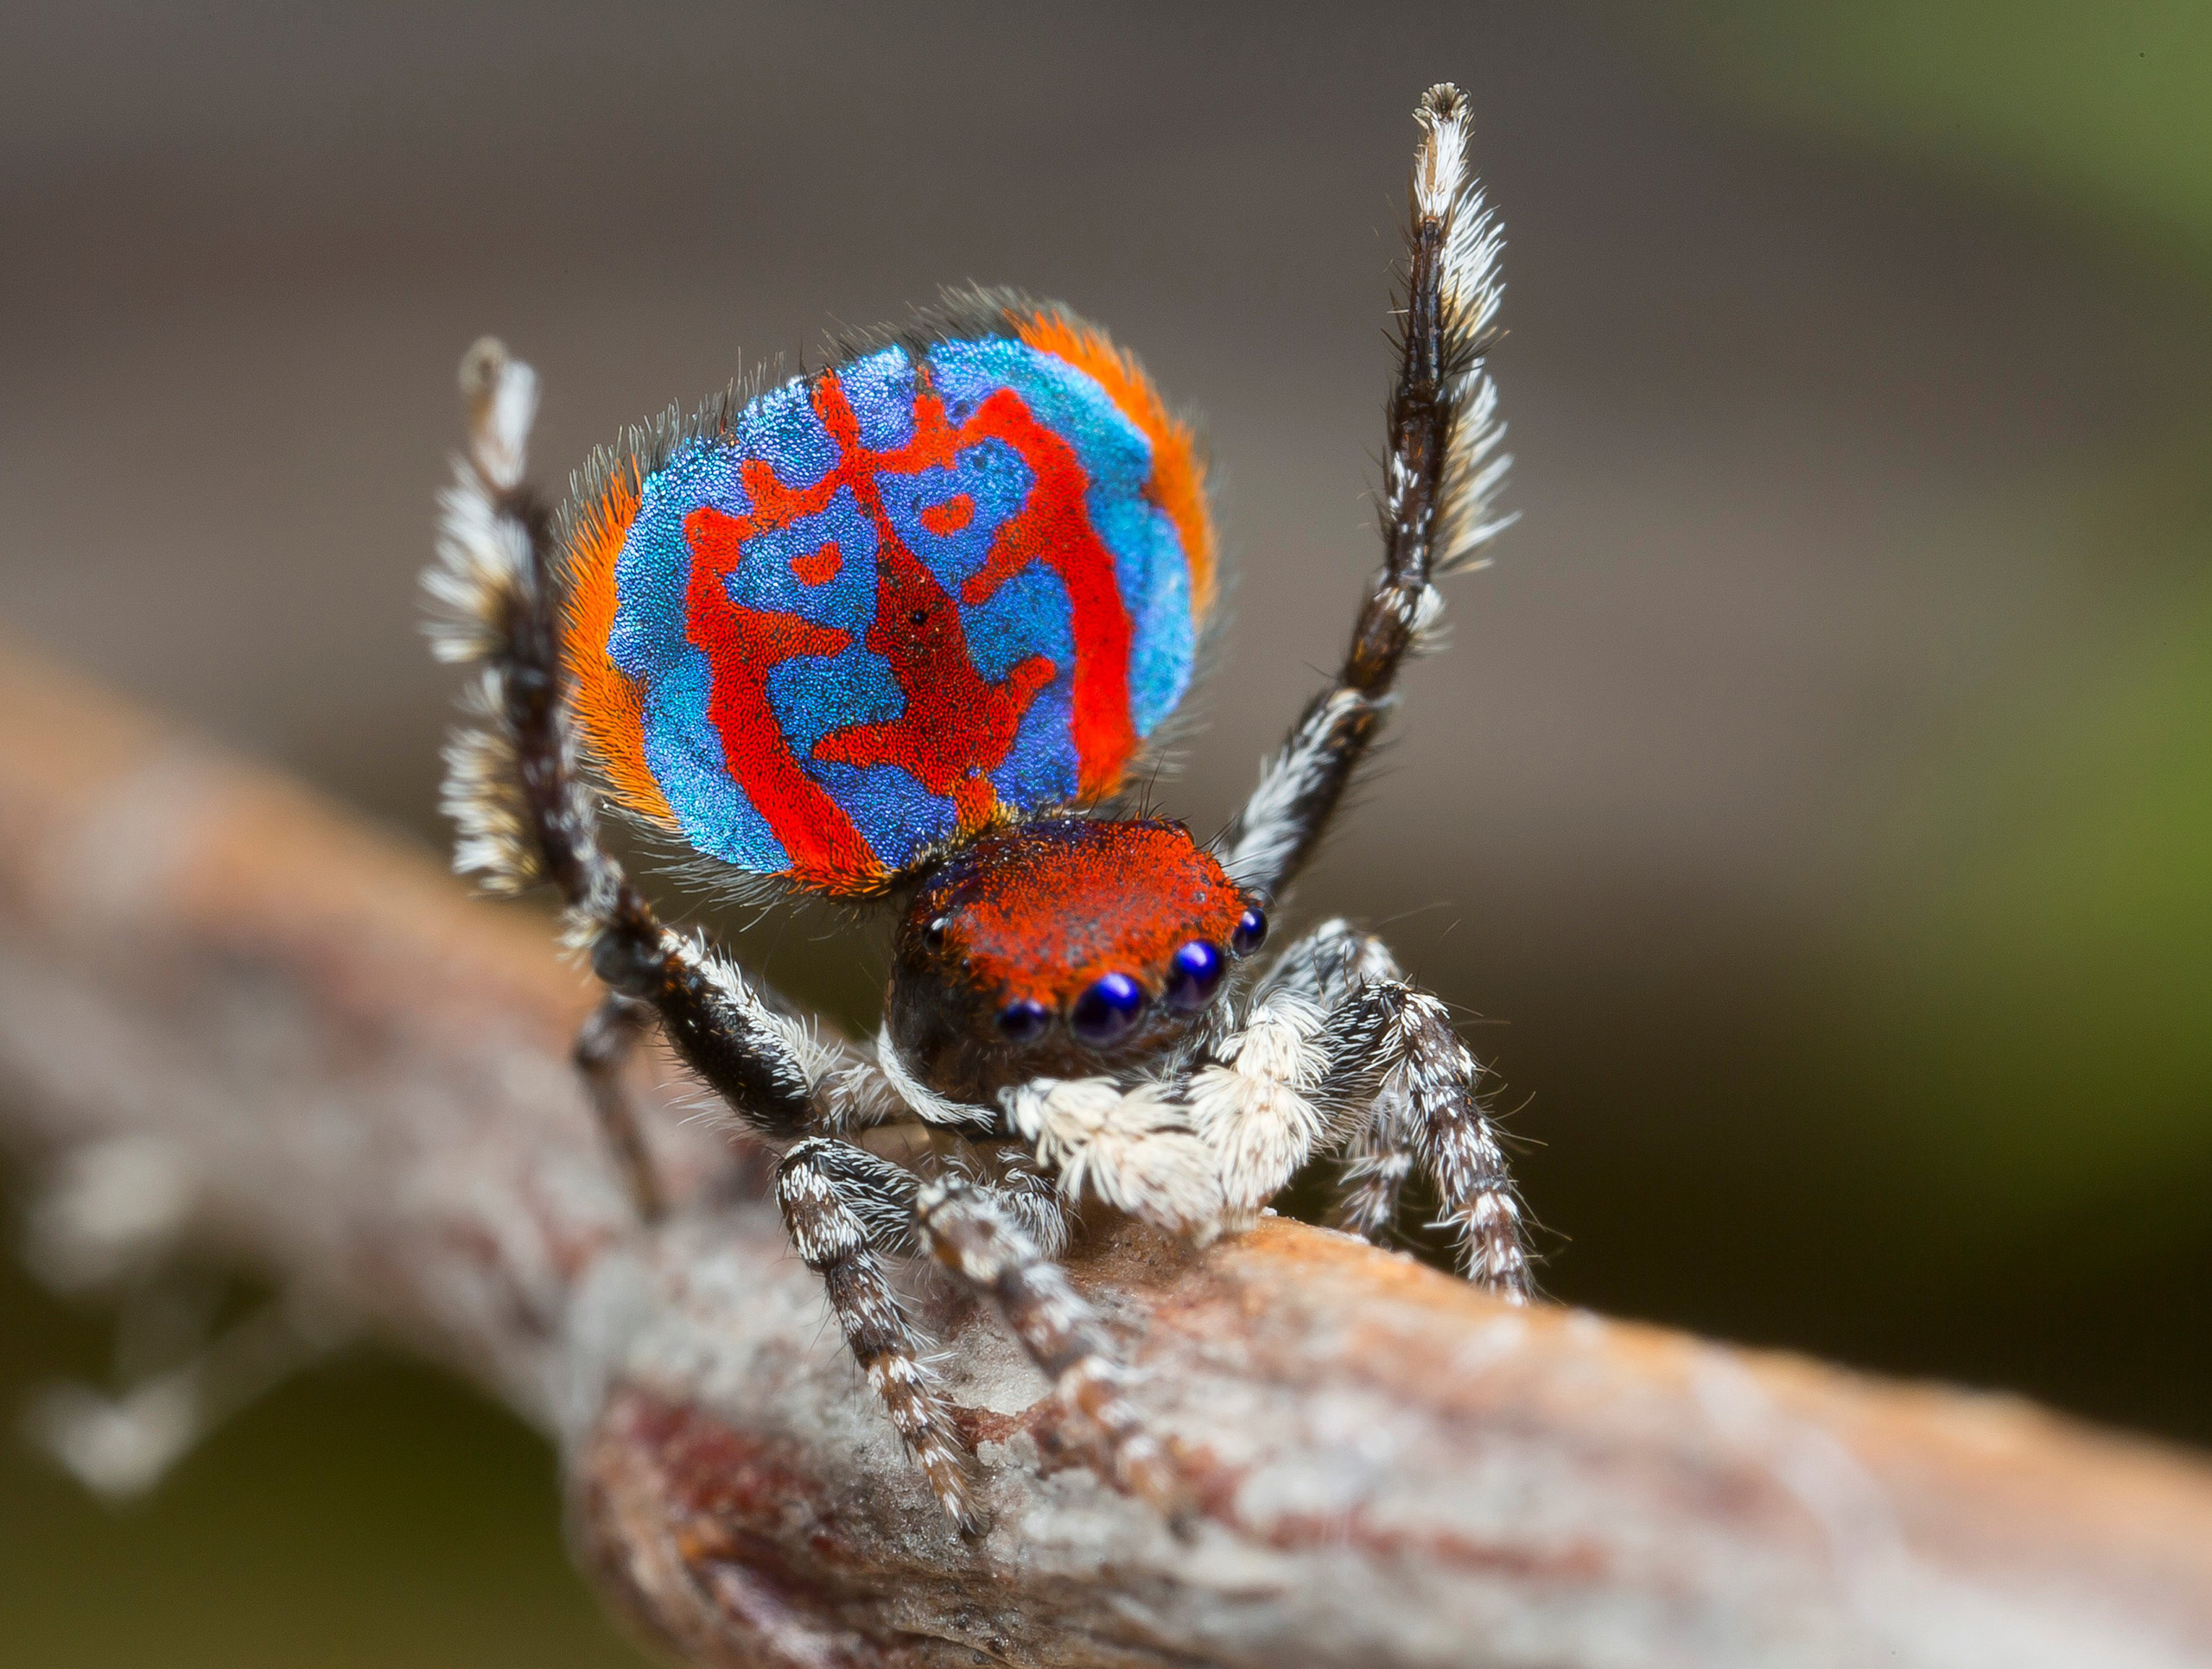 A specimen of the newly-discovered Australian Peacock spider, Maratus Bubo, shows off its colorful abdomen in Australia, on June 6, 2016.